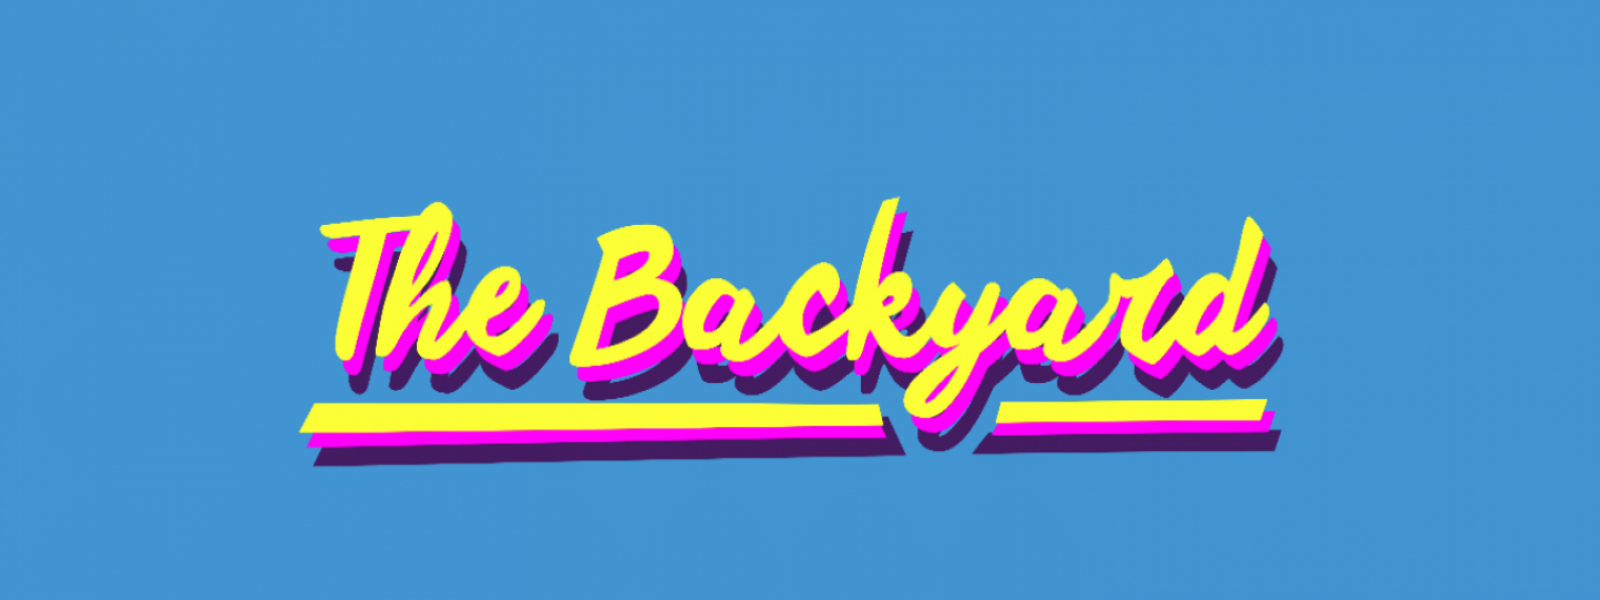 The Backyard is the first music video team at The Upright Citizens Brigade Theatre!